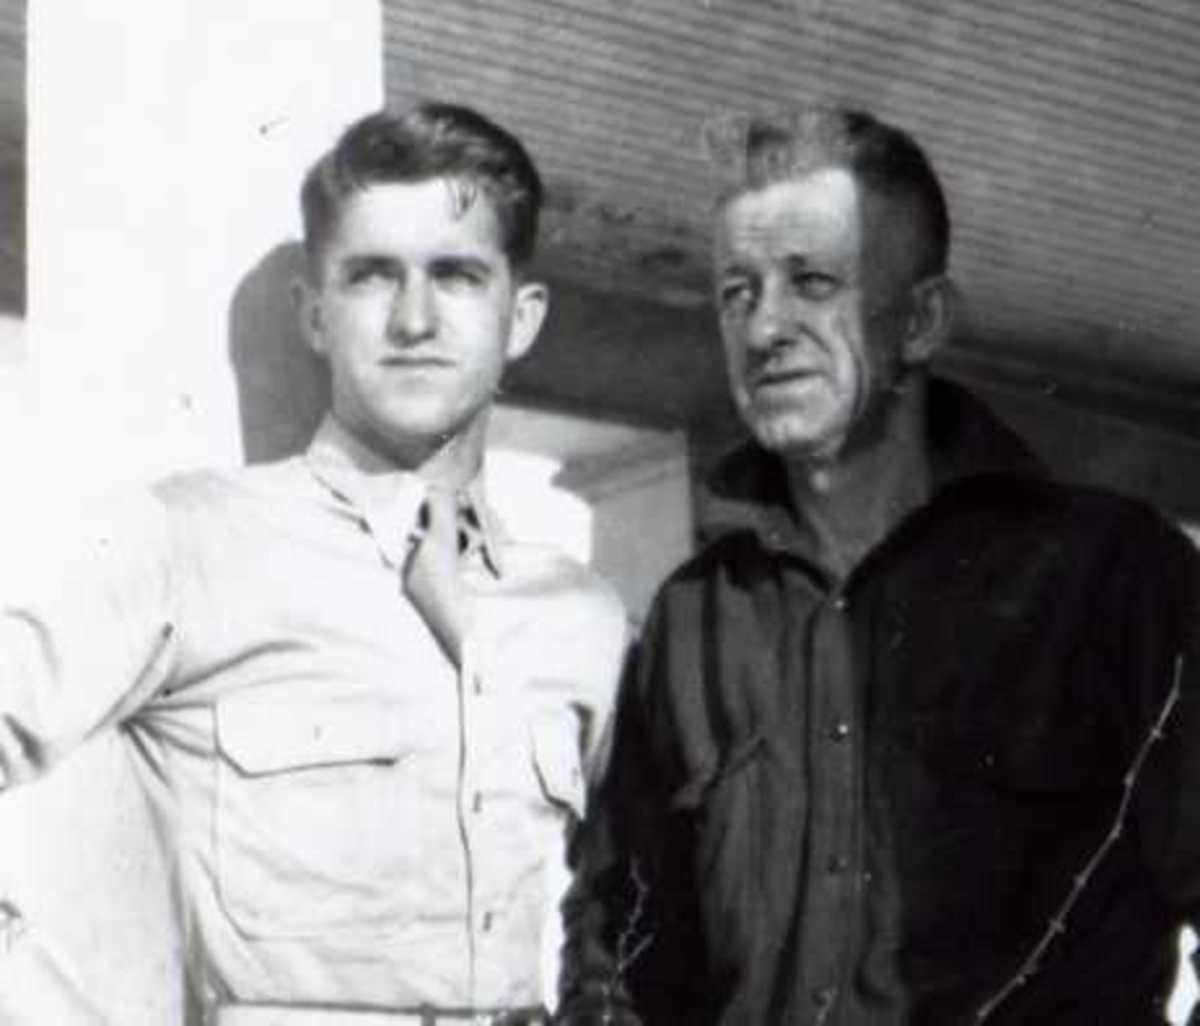 World War II -- My Uncle Lionel with his Dad